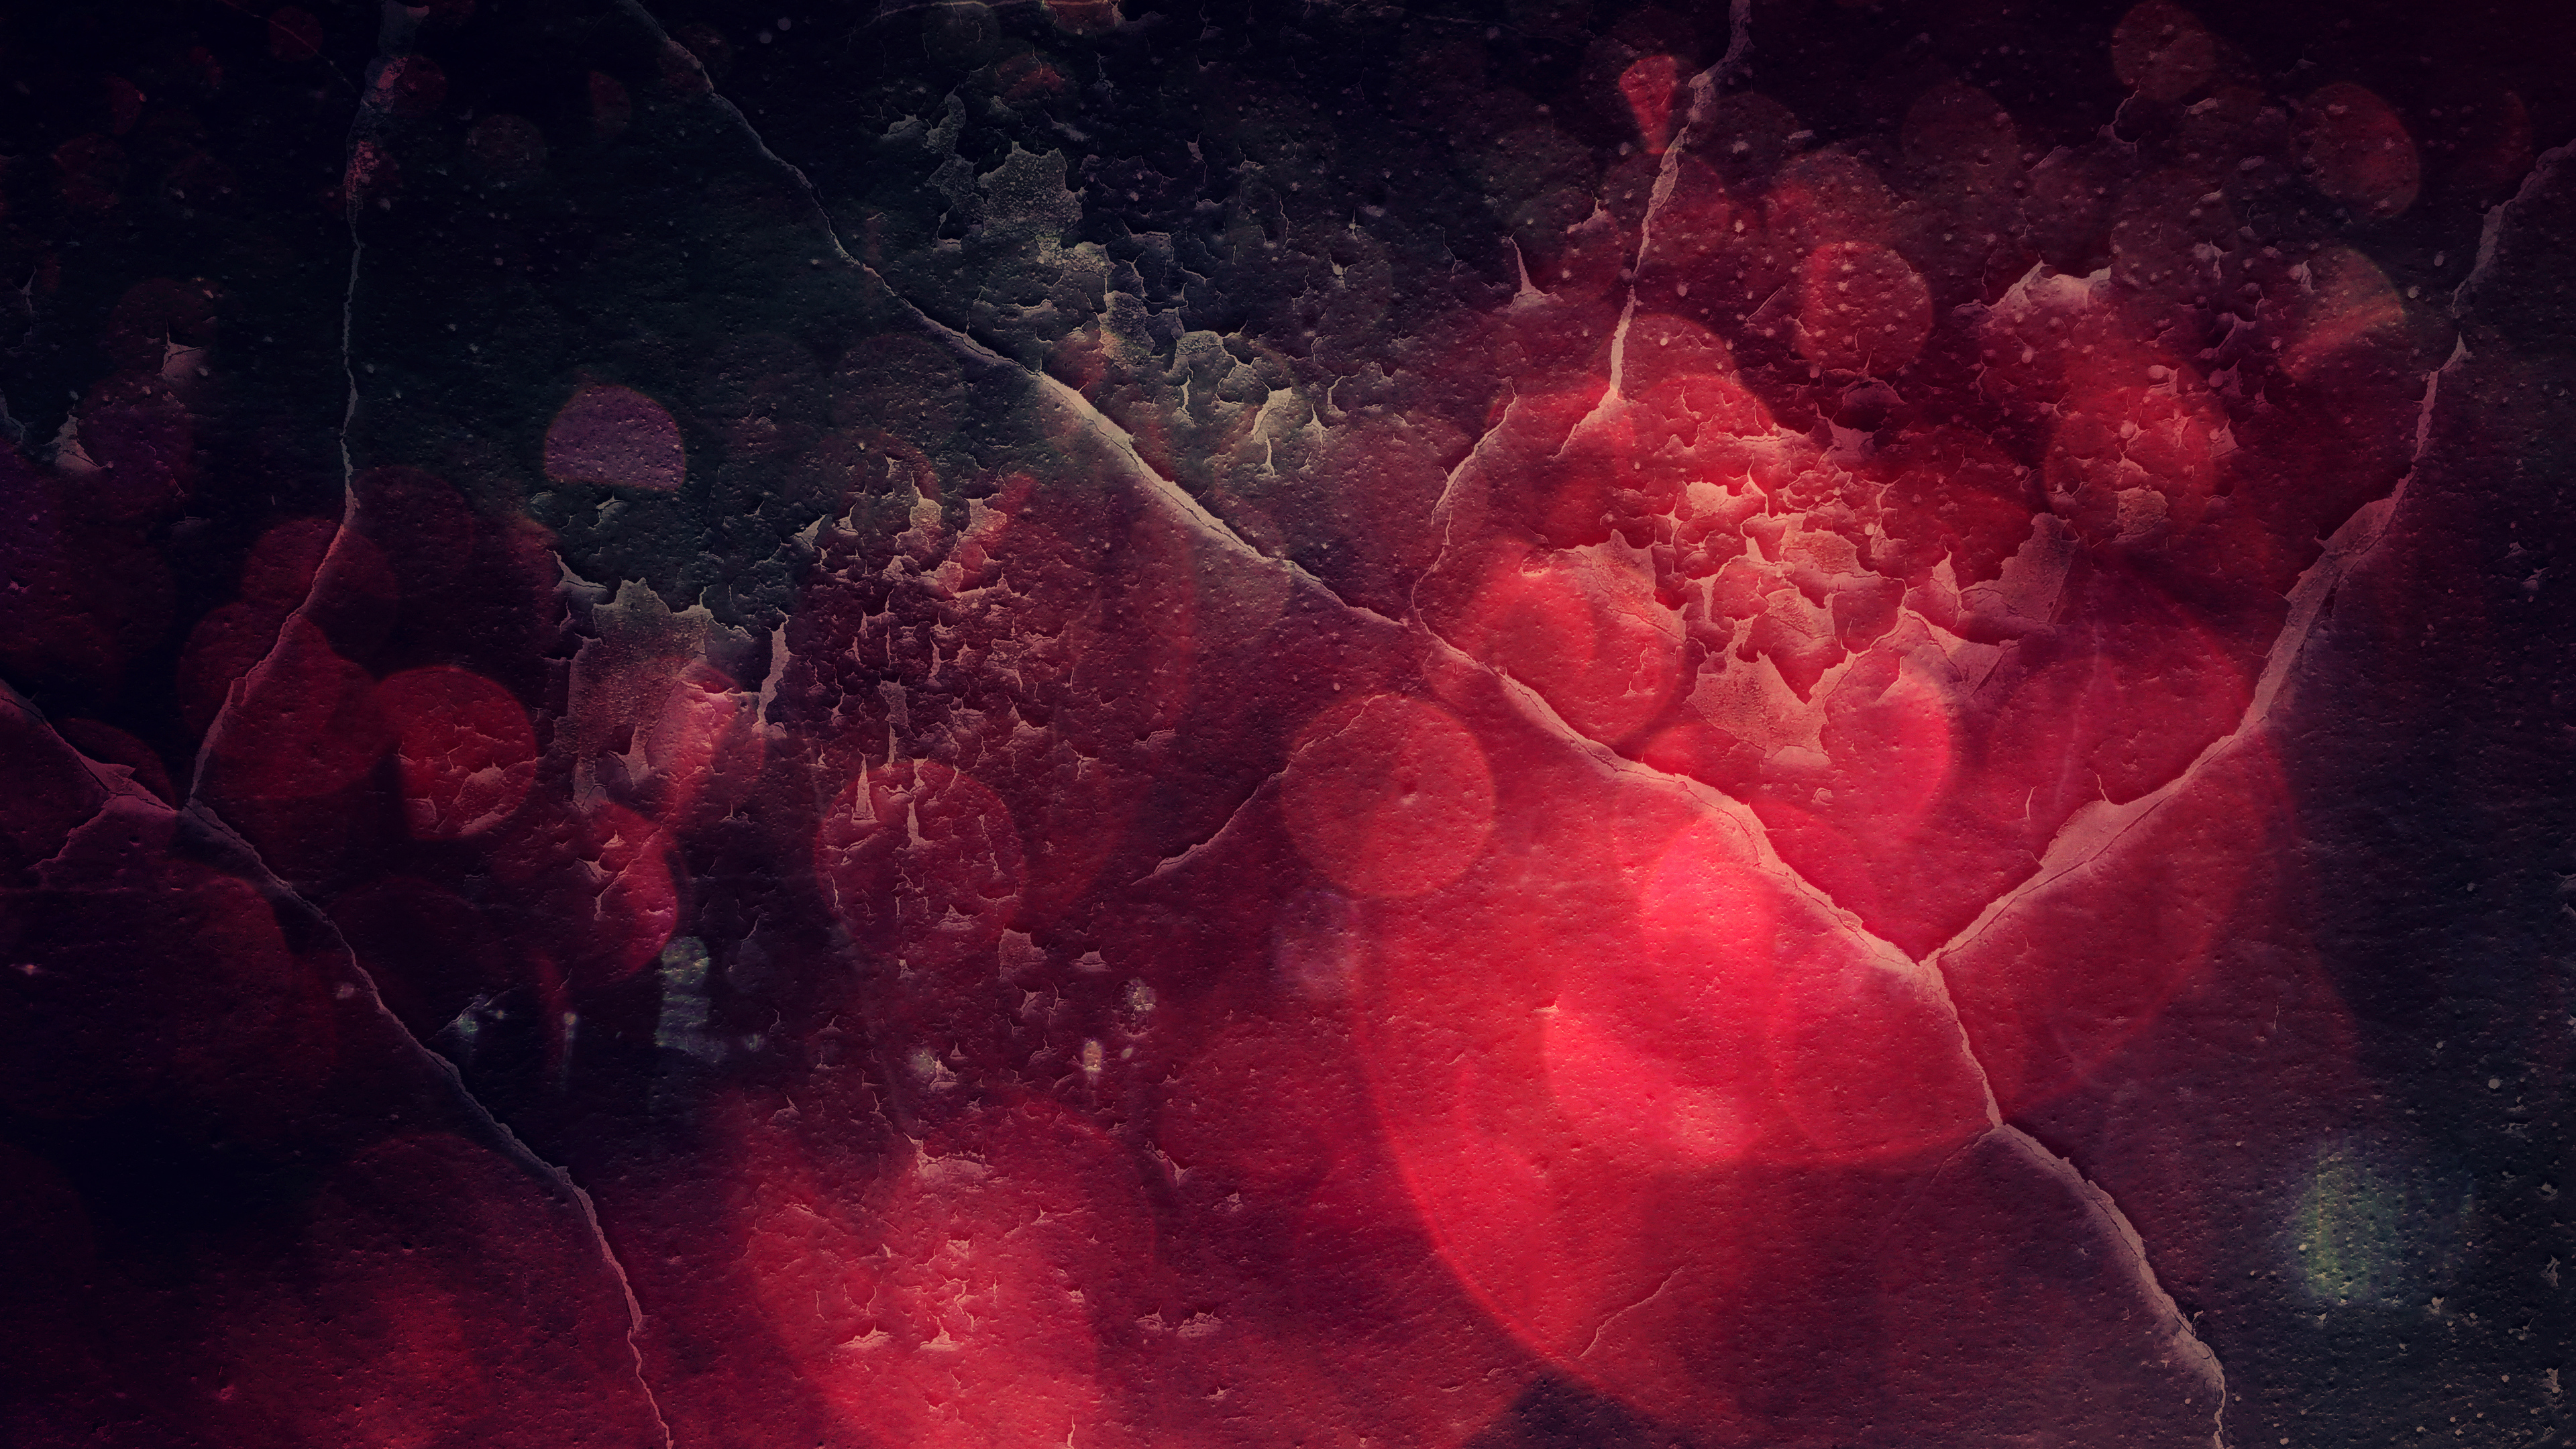 Texture Red Abstract 4k texture wallpapers, red wallpapers ...